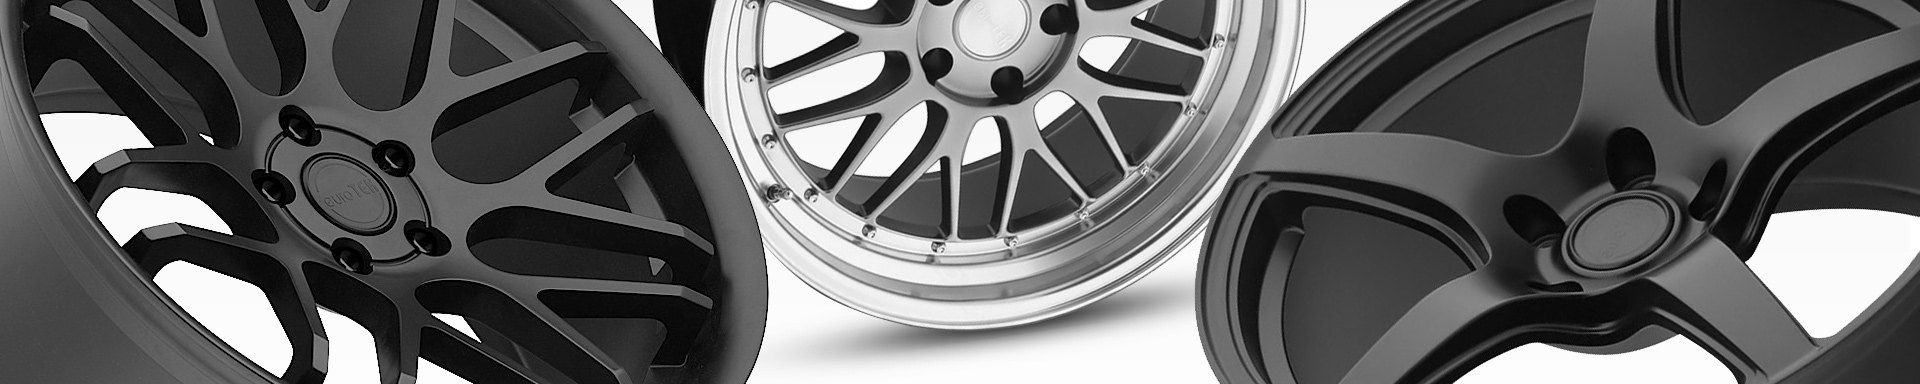 Universal Eurotek WHEELS & RIMS